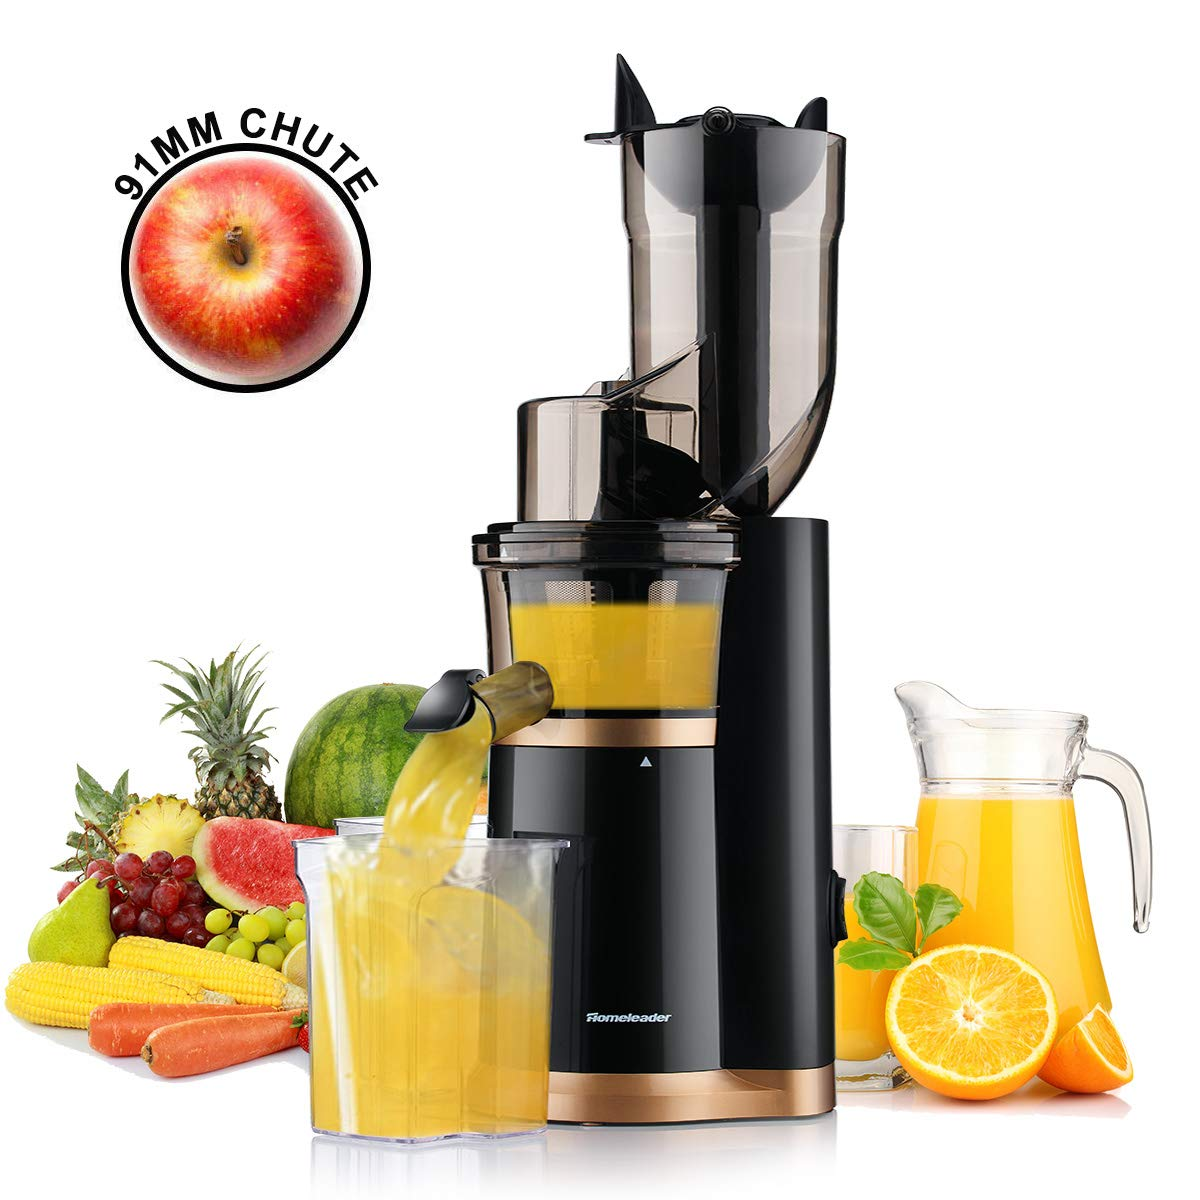 Masticating Juicer Slow Juicer, Slow Juicer Extractor by Homeleader, 91mm (3.5inch) Wide Chute Juice Extractor, Cold Press Juicer Machine with Extreme Quiet Motor and Reverse Function, High Nutrient and Vitamins for All Fruits and Veggies, K59-032